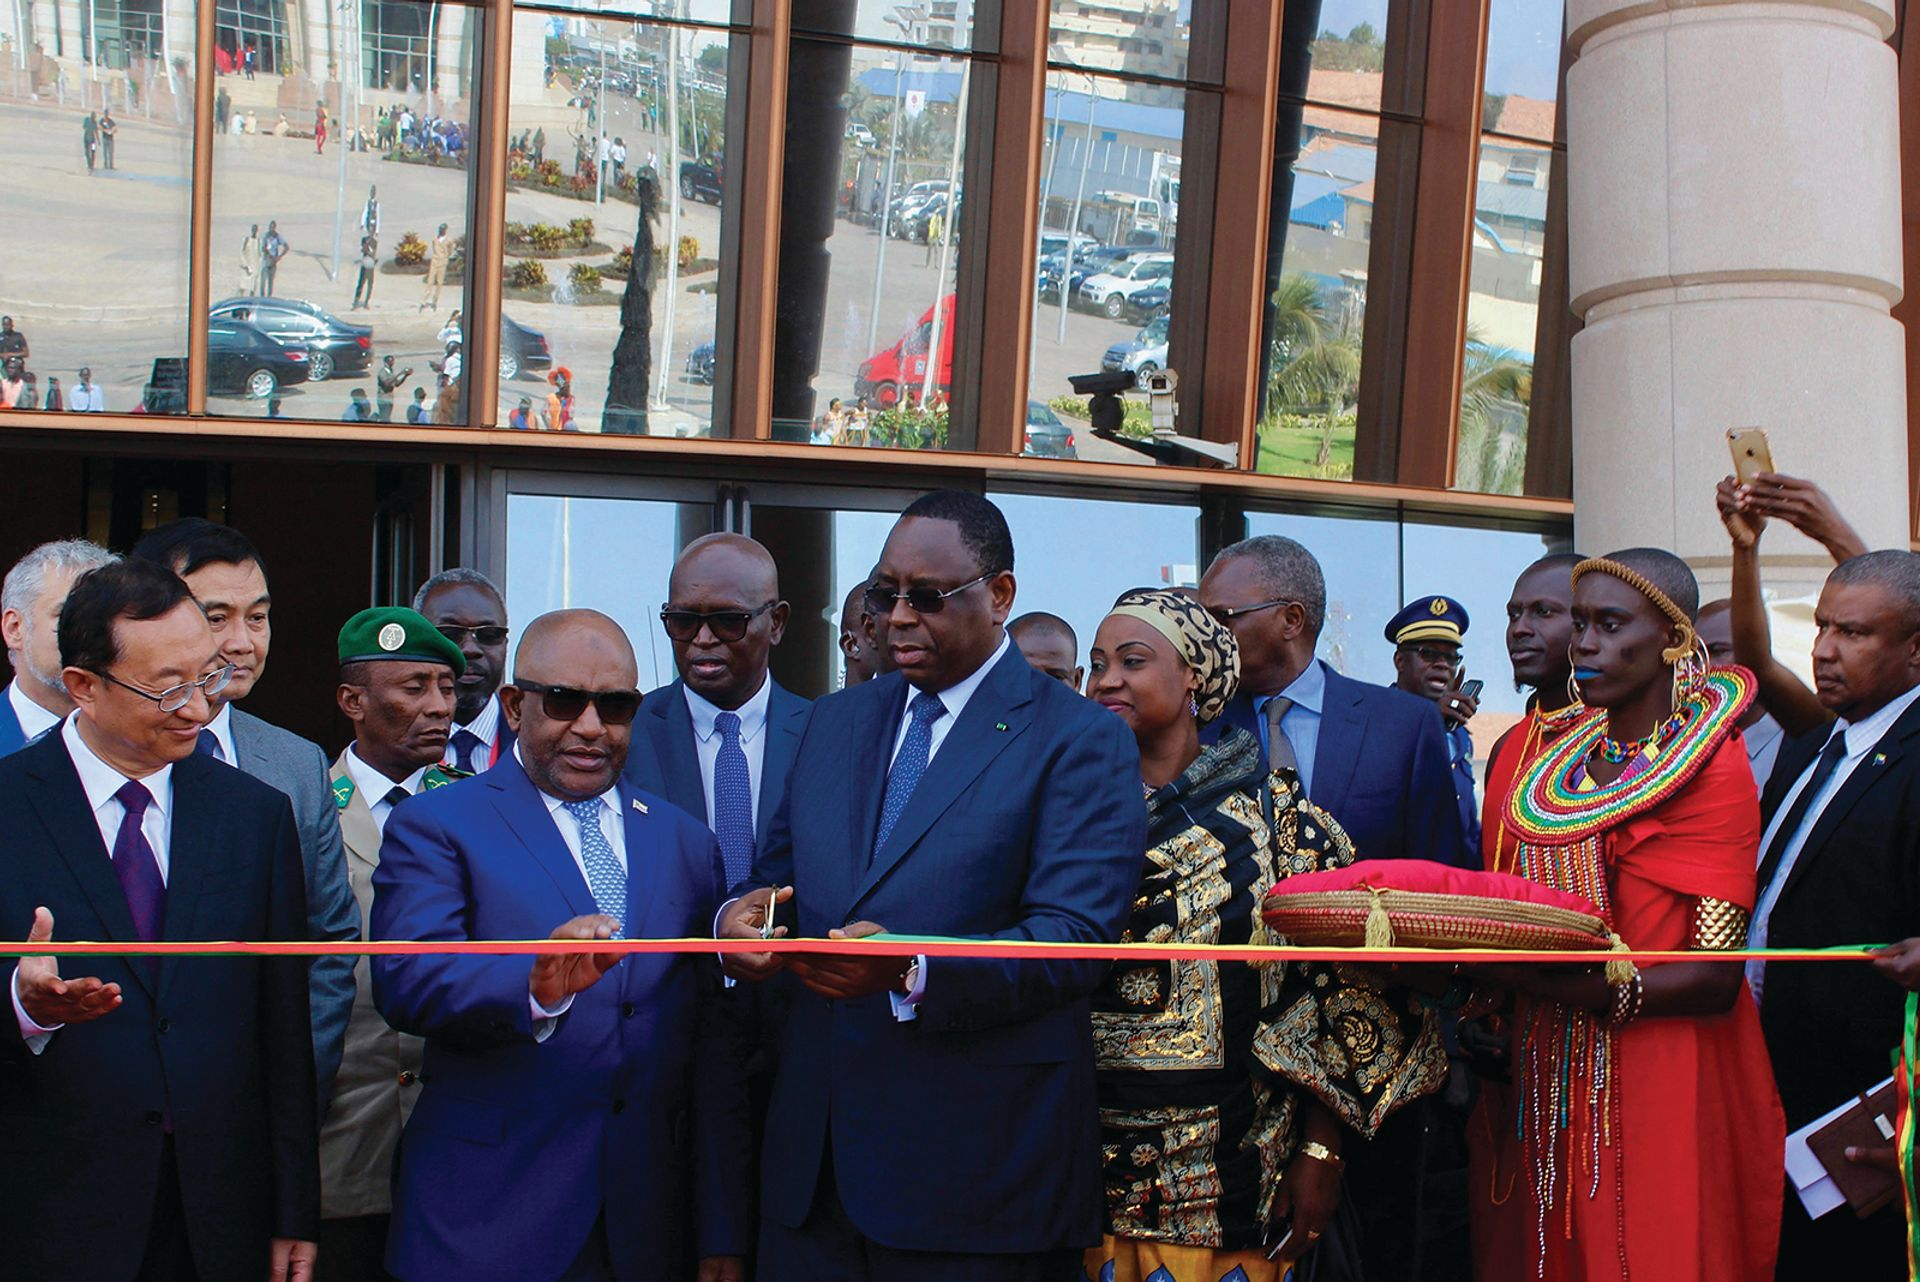 Senegal's president Macky Sall cuts a ribbon at the opening of the  Museum of Black Civilisations in Dakar last December courtesy of the Department of Arts, University of Pretoria